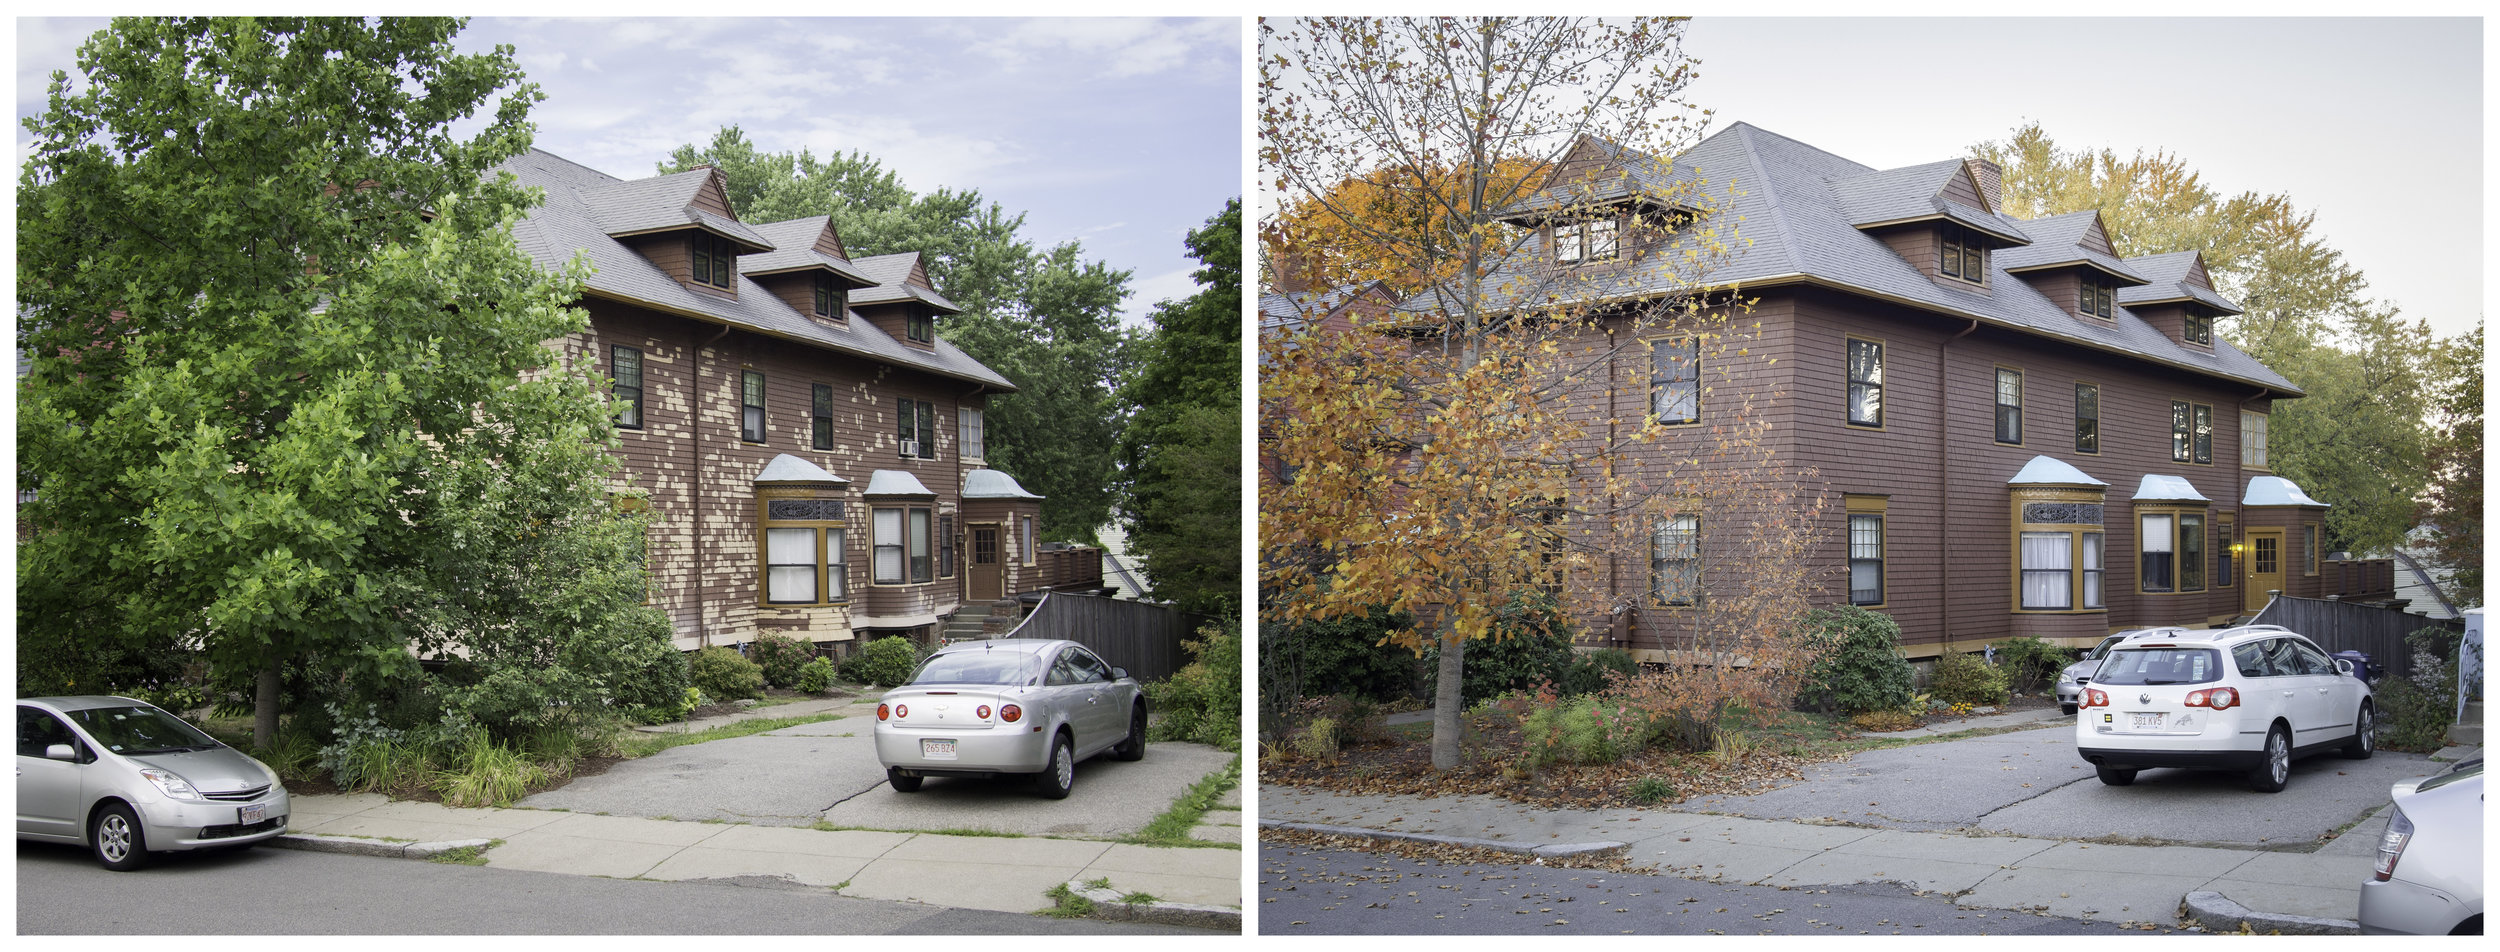 dorchester.before.after.jpg